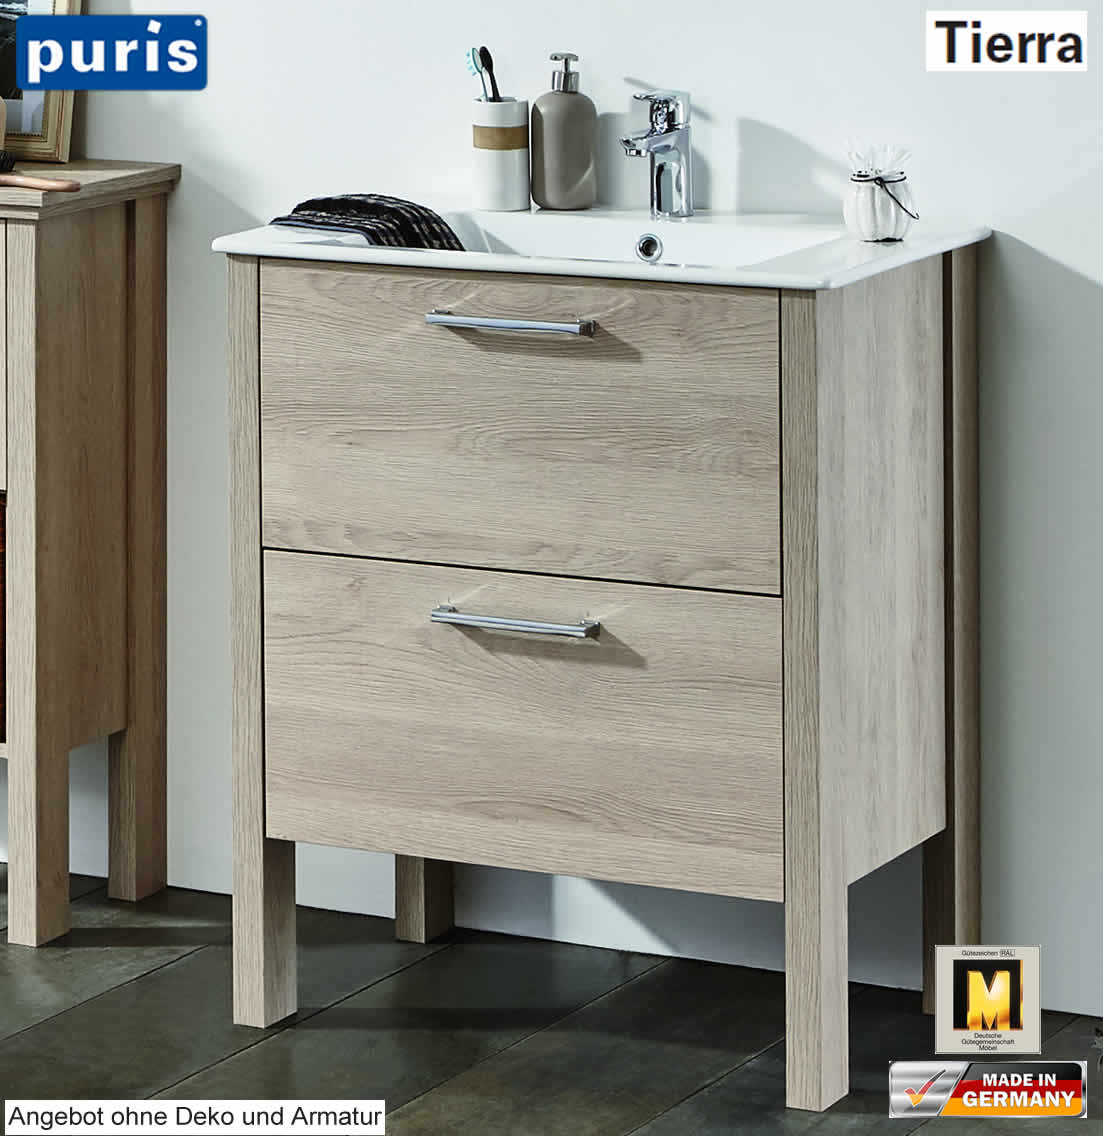 puris tierra waschtisch set 70 cm breite mit keramik wt und 2 ausz gen stehende variante. Black Bedroom Furniture Sets. Home Design Ideas